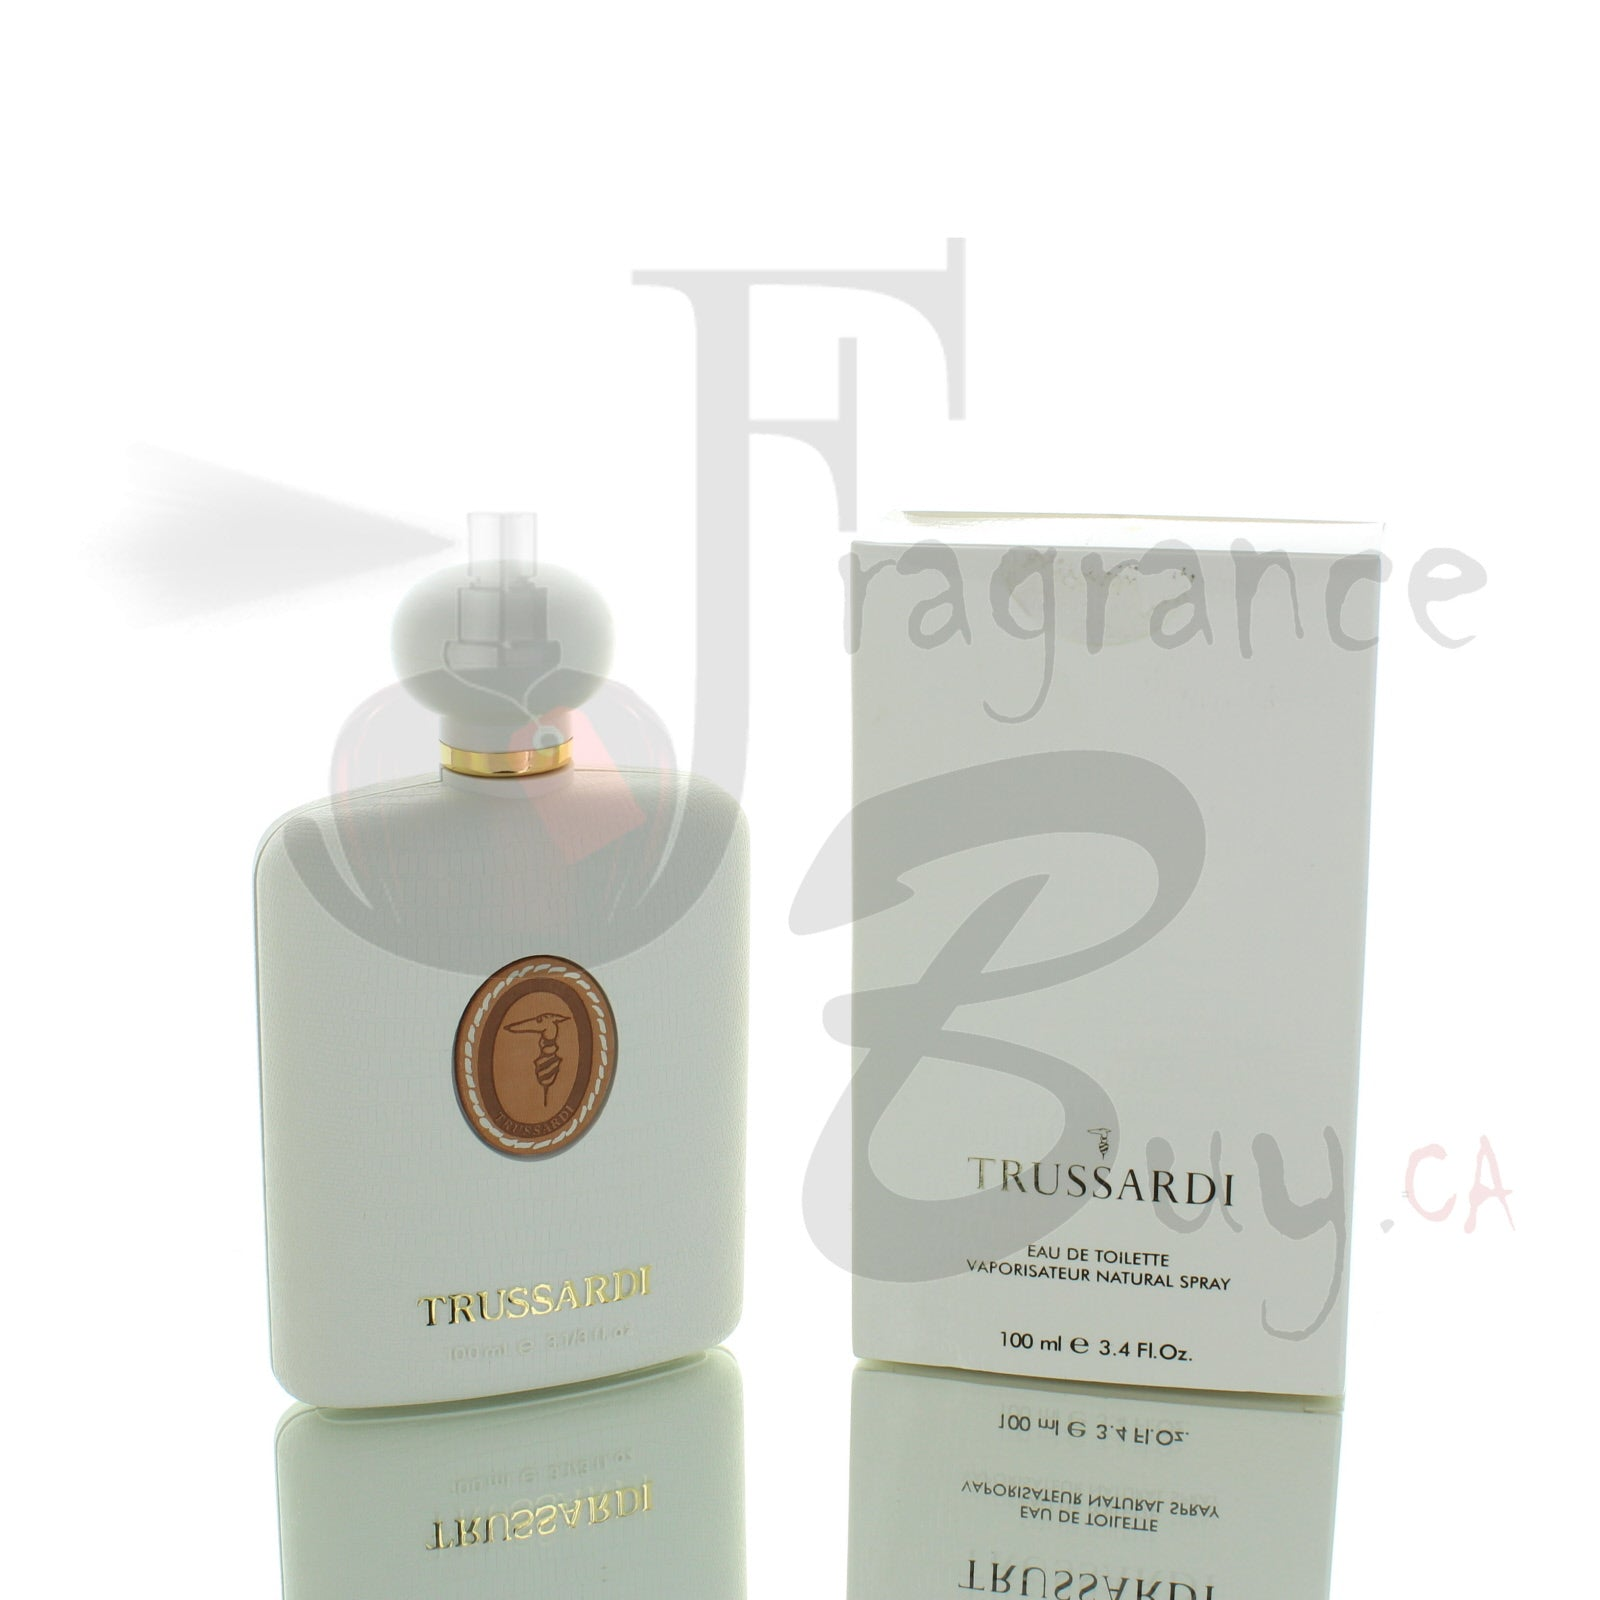 Trussardi (Vintage Pack) For Woman